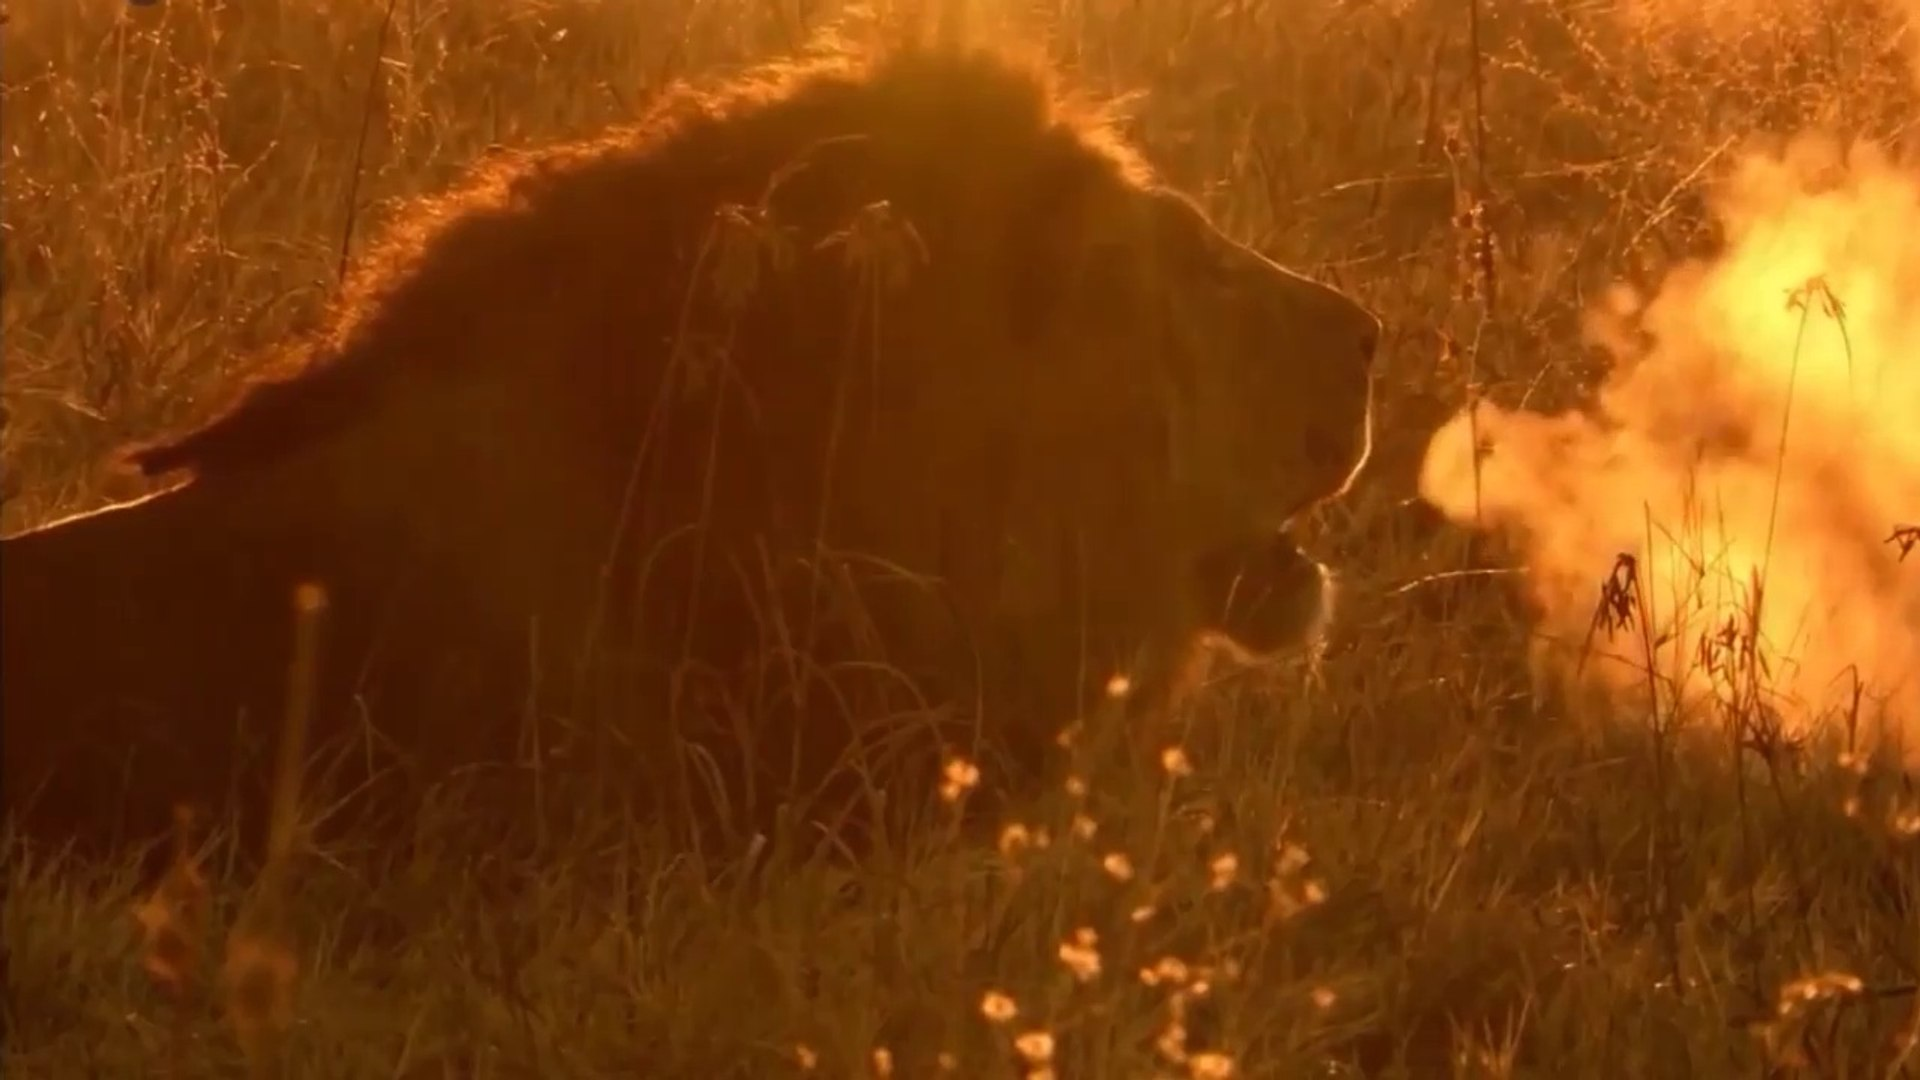 National Geographic Animals - Africa's Creative Killers Part 2 - Lions and Leopards